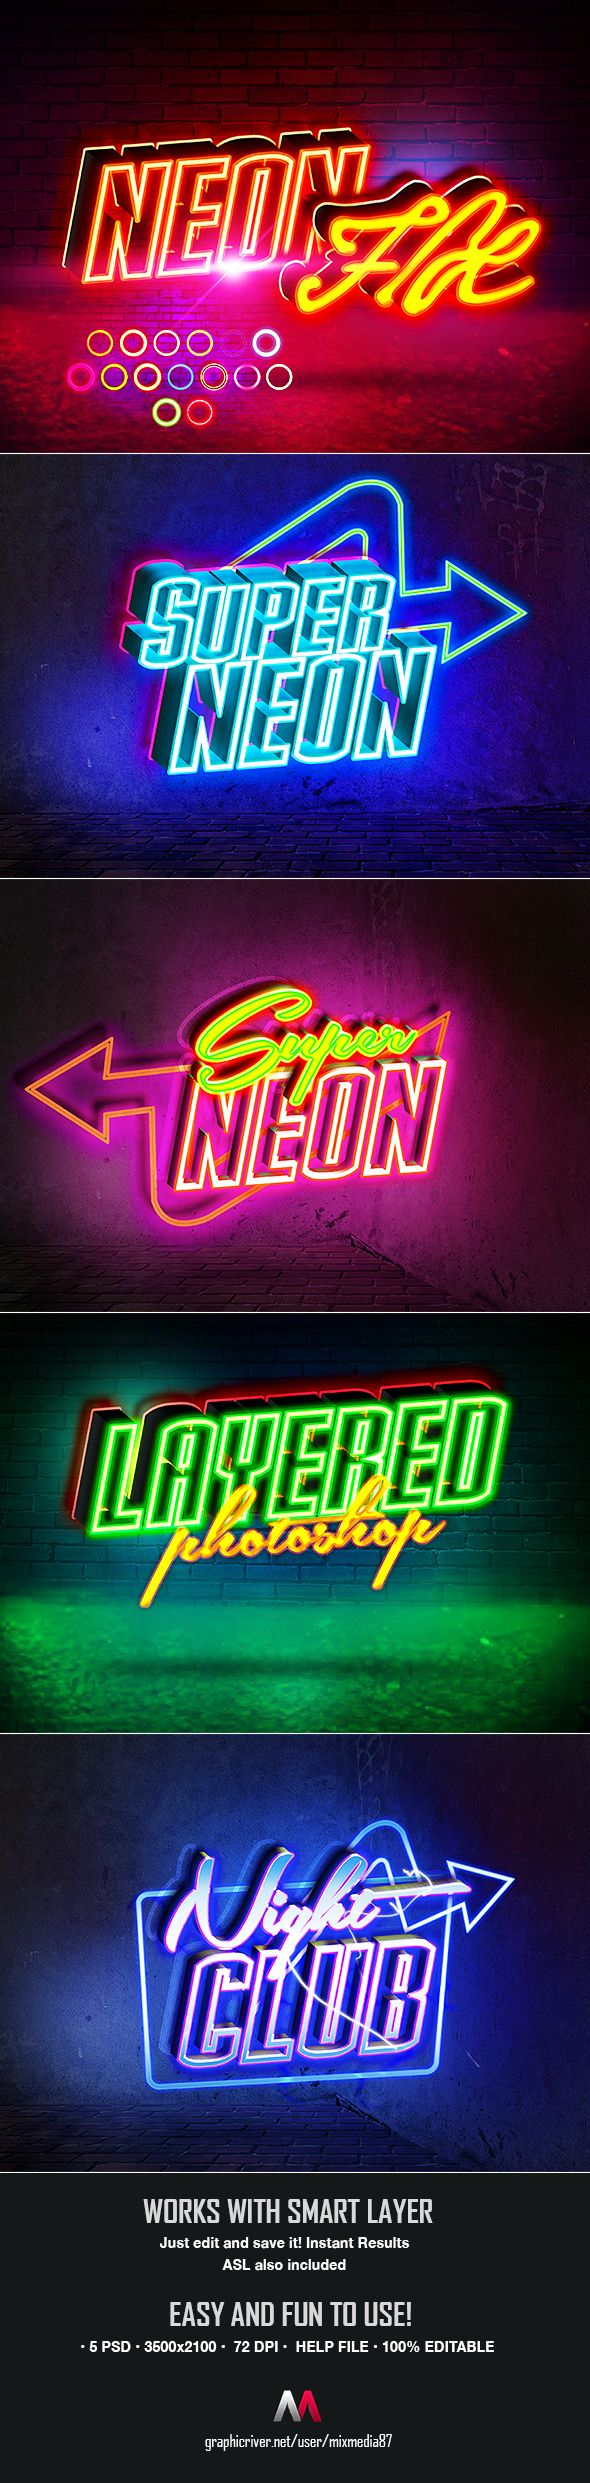 Neon Sign Text Photoshop Styles. Download here: https://graphicriver.net/item/neon-sign-styles-v4/17469192?ref=ksioks